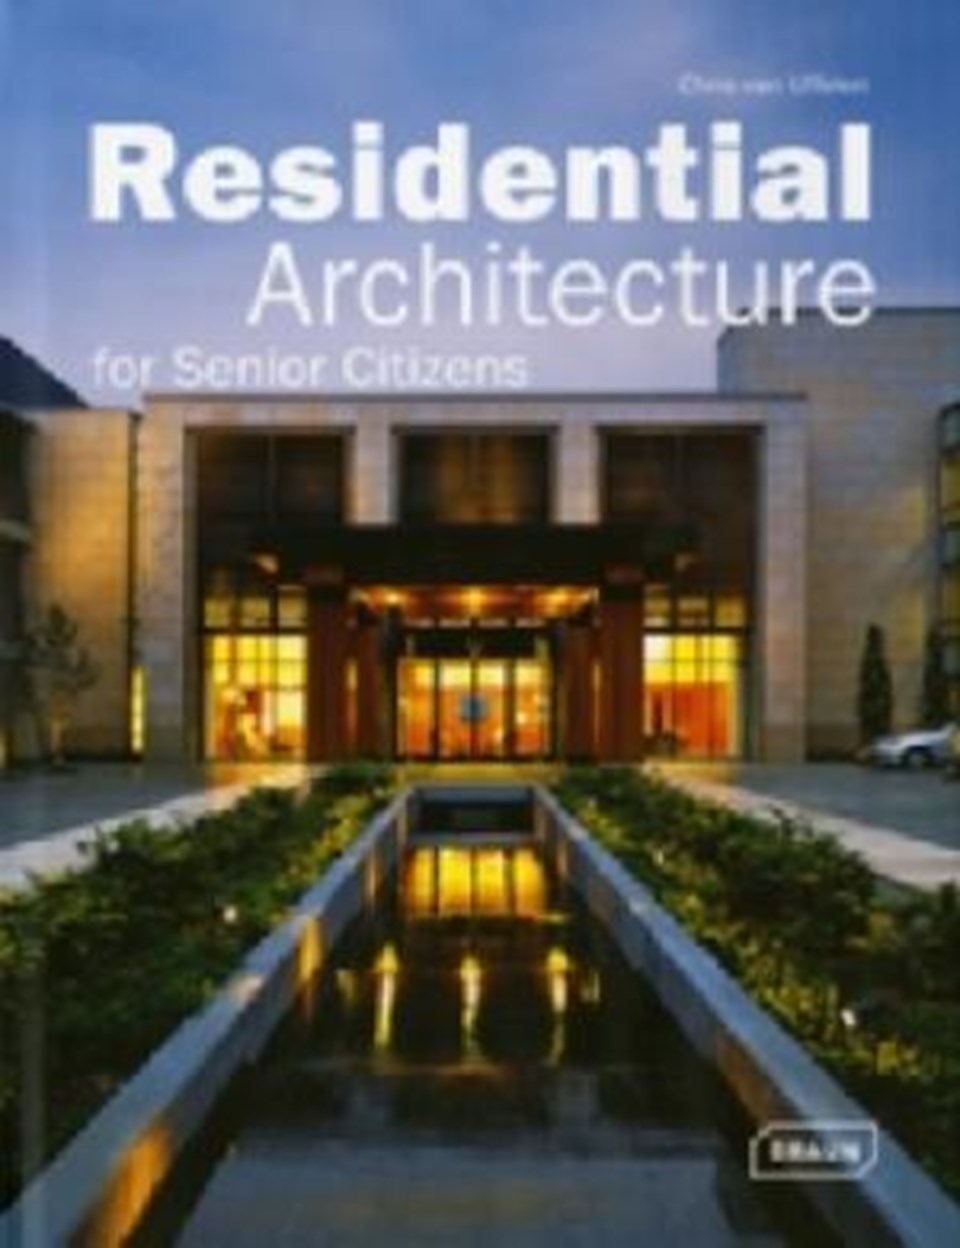 Residential Architecture for Senior Citizens